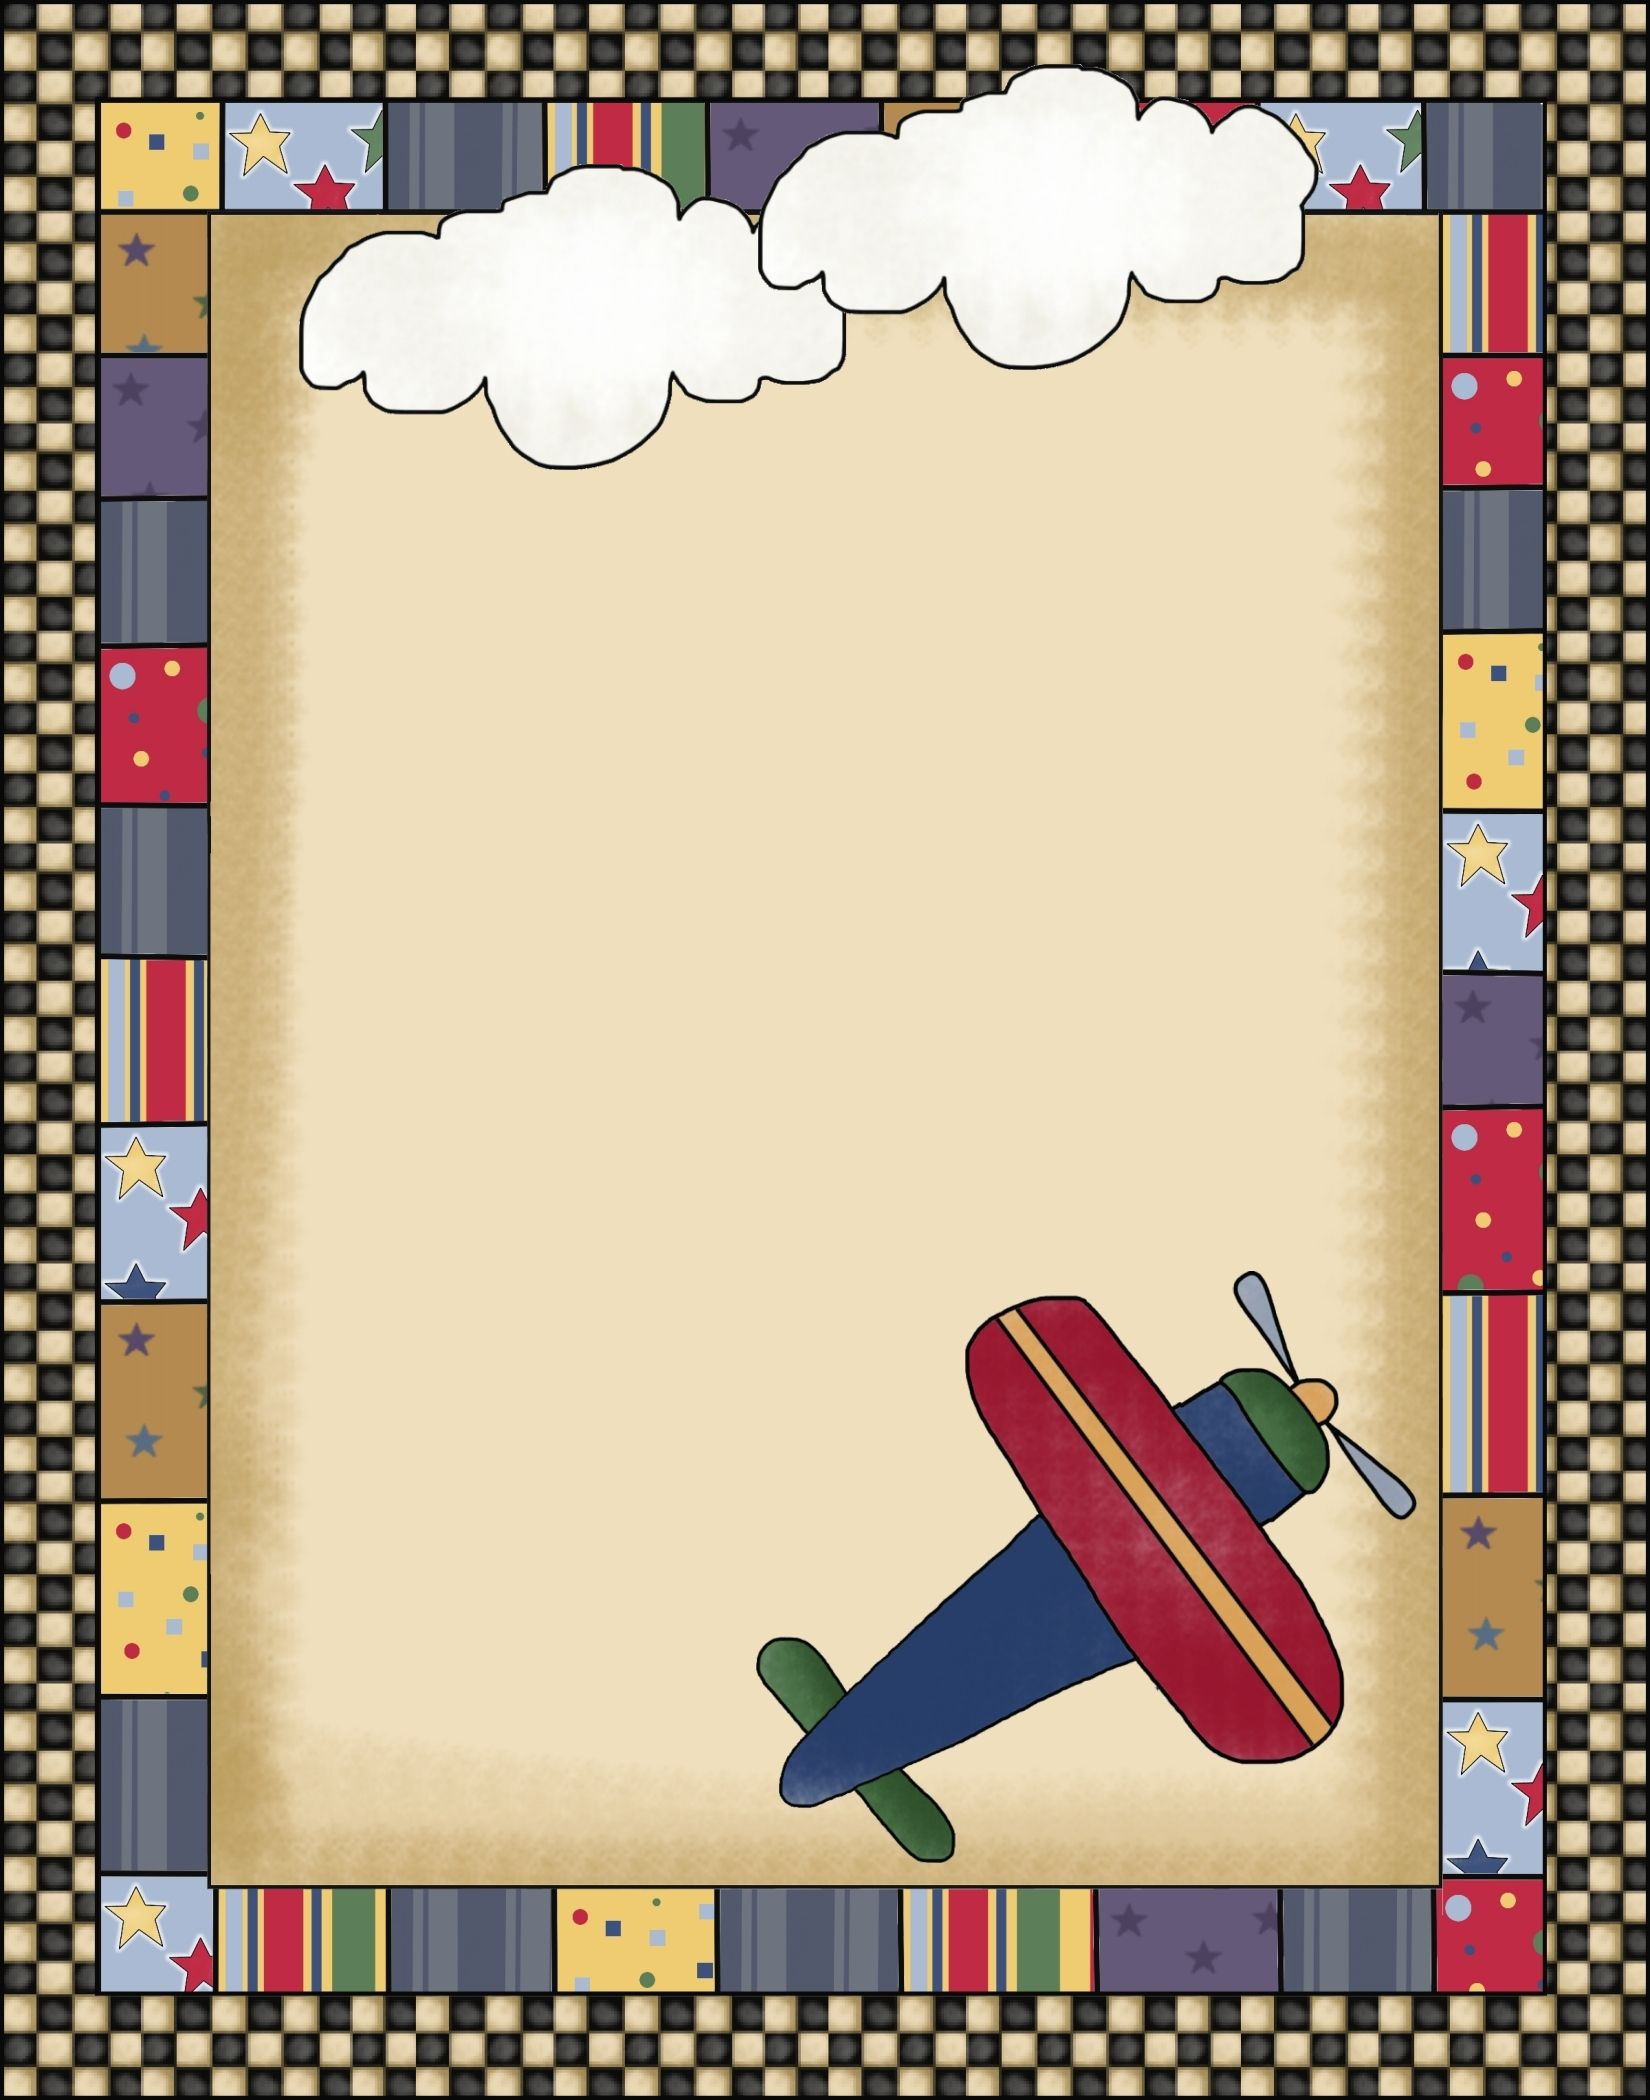 Plane picture frame gallery craft decoration ideas plane picture frame image collections craft decoration ideas plane picture frame choice image craft decoration ideas jeuxipadfo Gallery